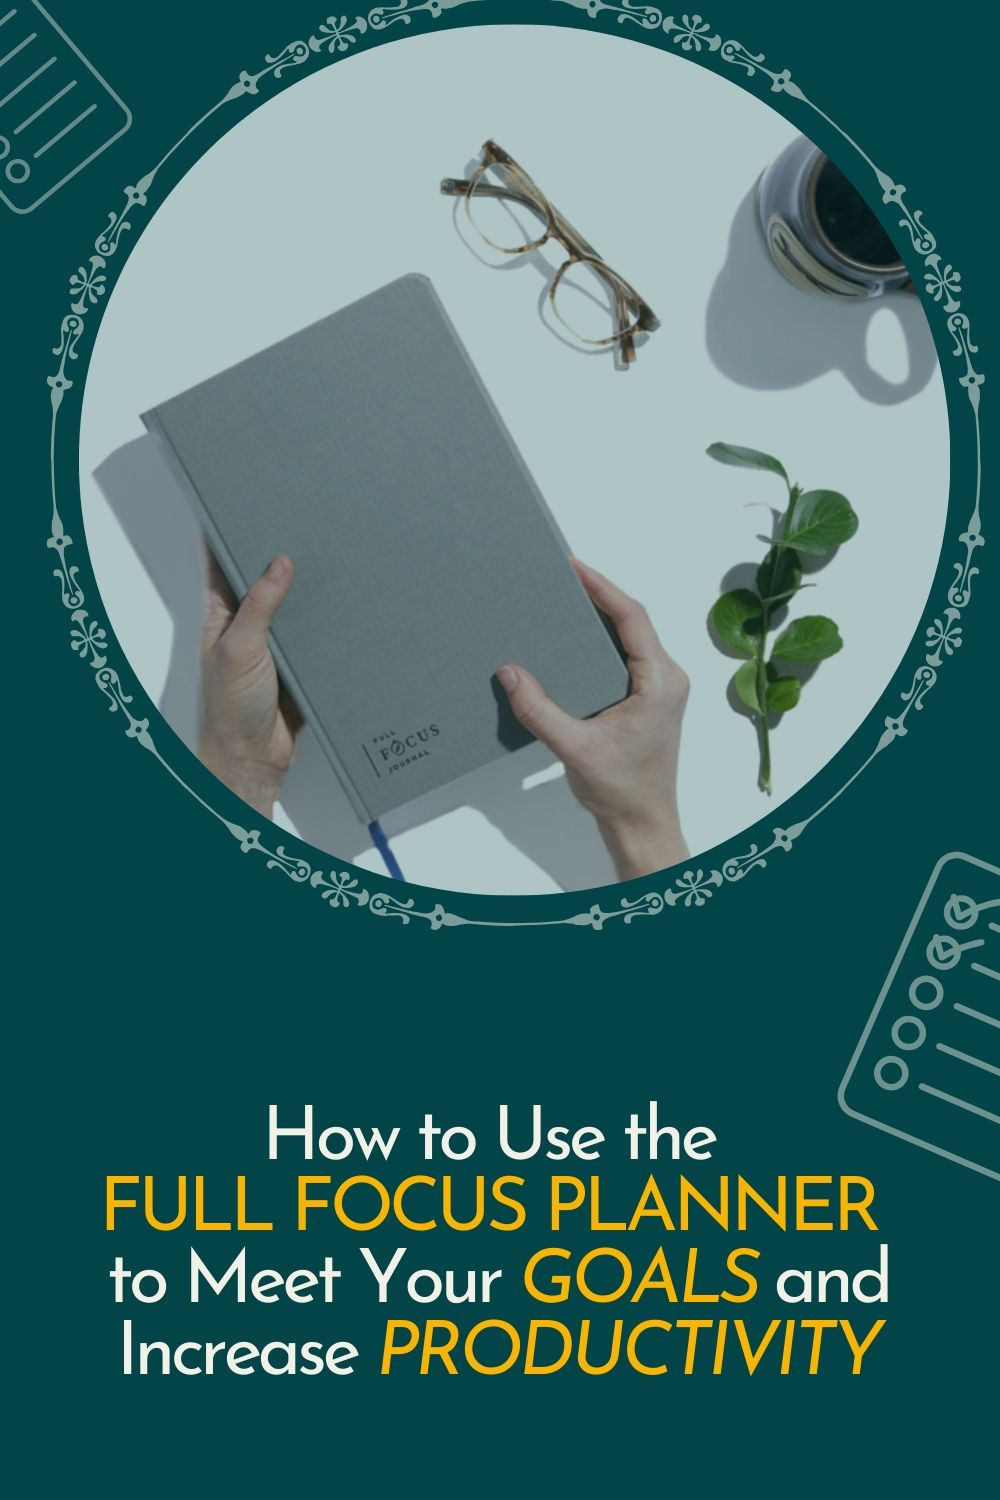 How to Use Full Focus Planner for Goals